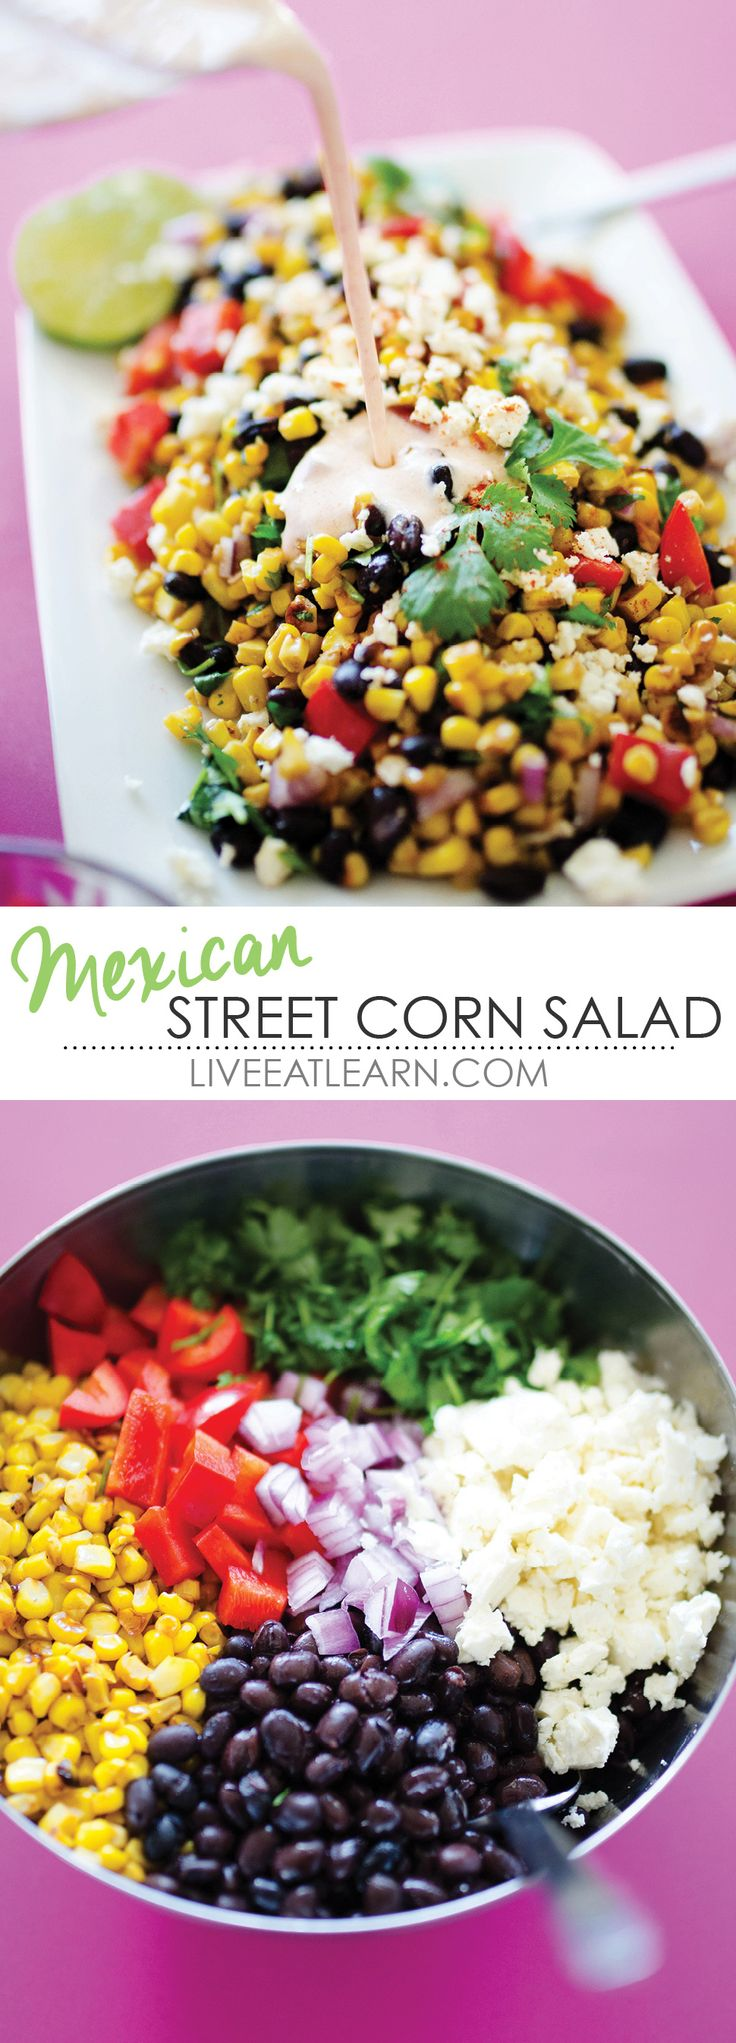 This Mexican Street Corn Salad recipe is a healthy version of the classic street vendor style elote, a grilled corn on the cob rolled in cotija cheese and lathered in a creamy sauce. You can put this salad on anything from tacos to eggs, or eat it by itself! // Live Eat Learn